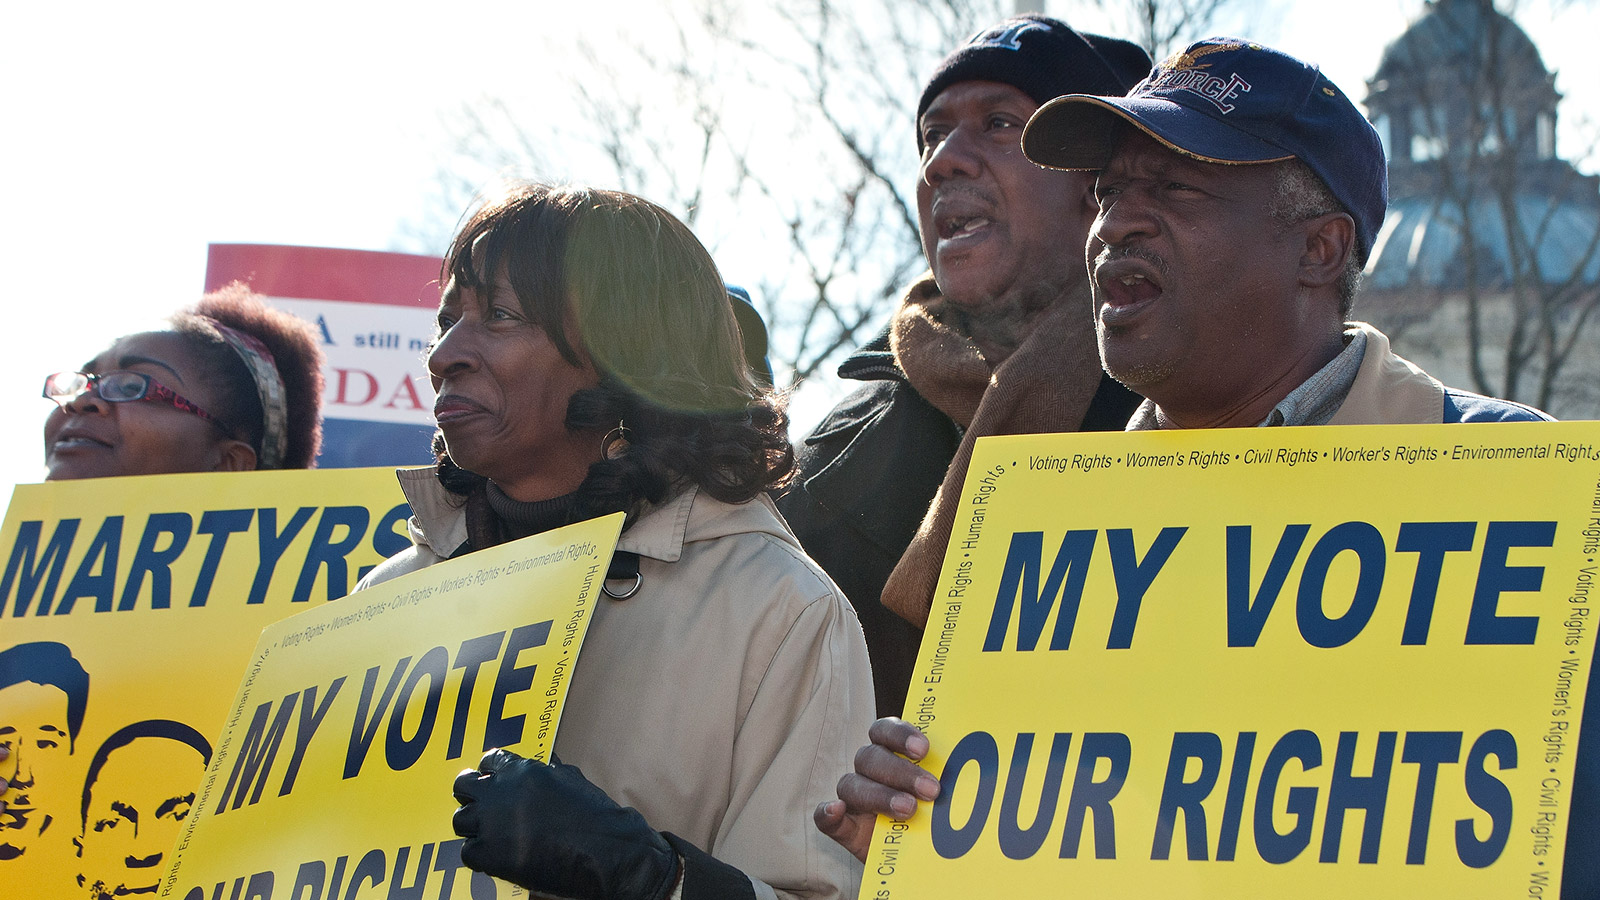 voting rights activists with signs